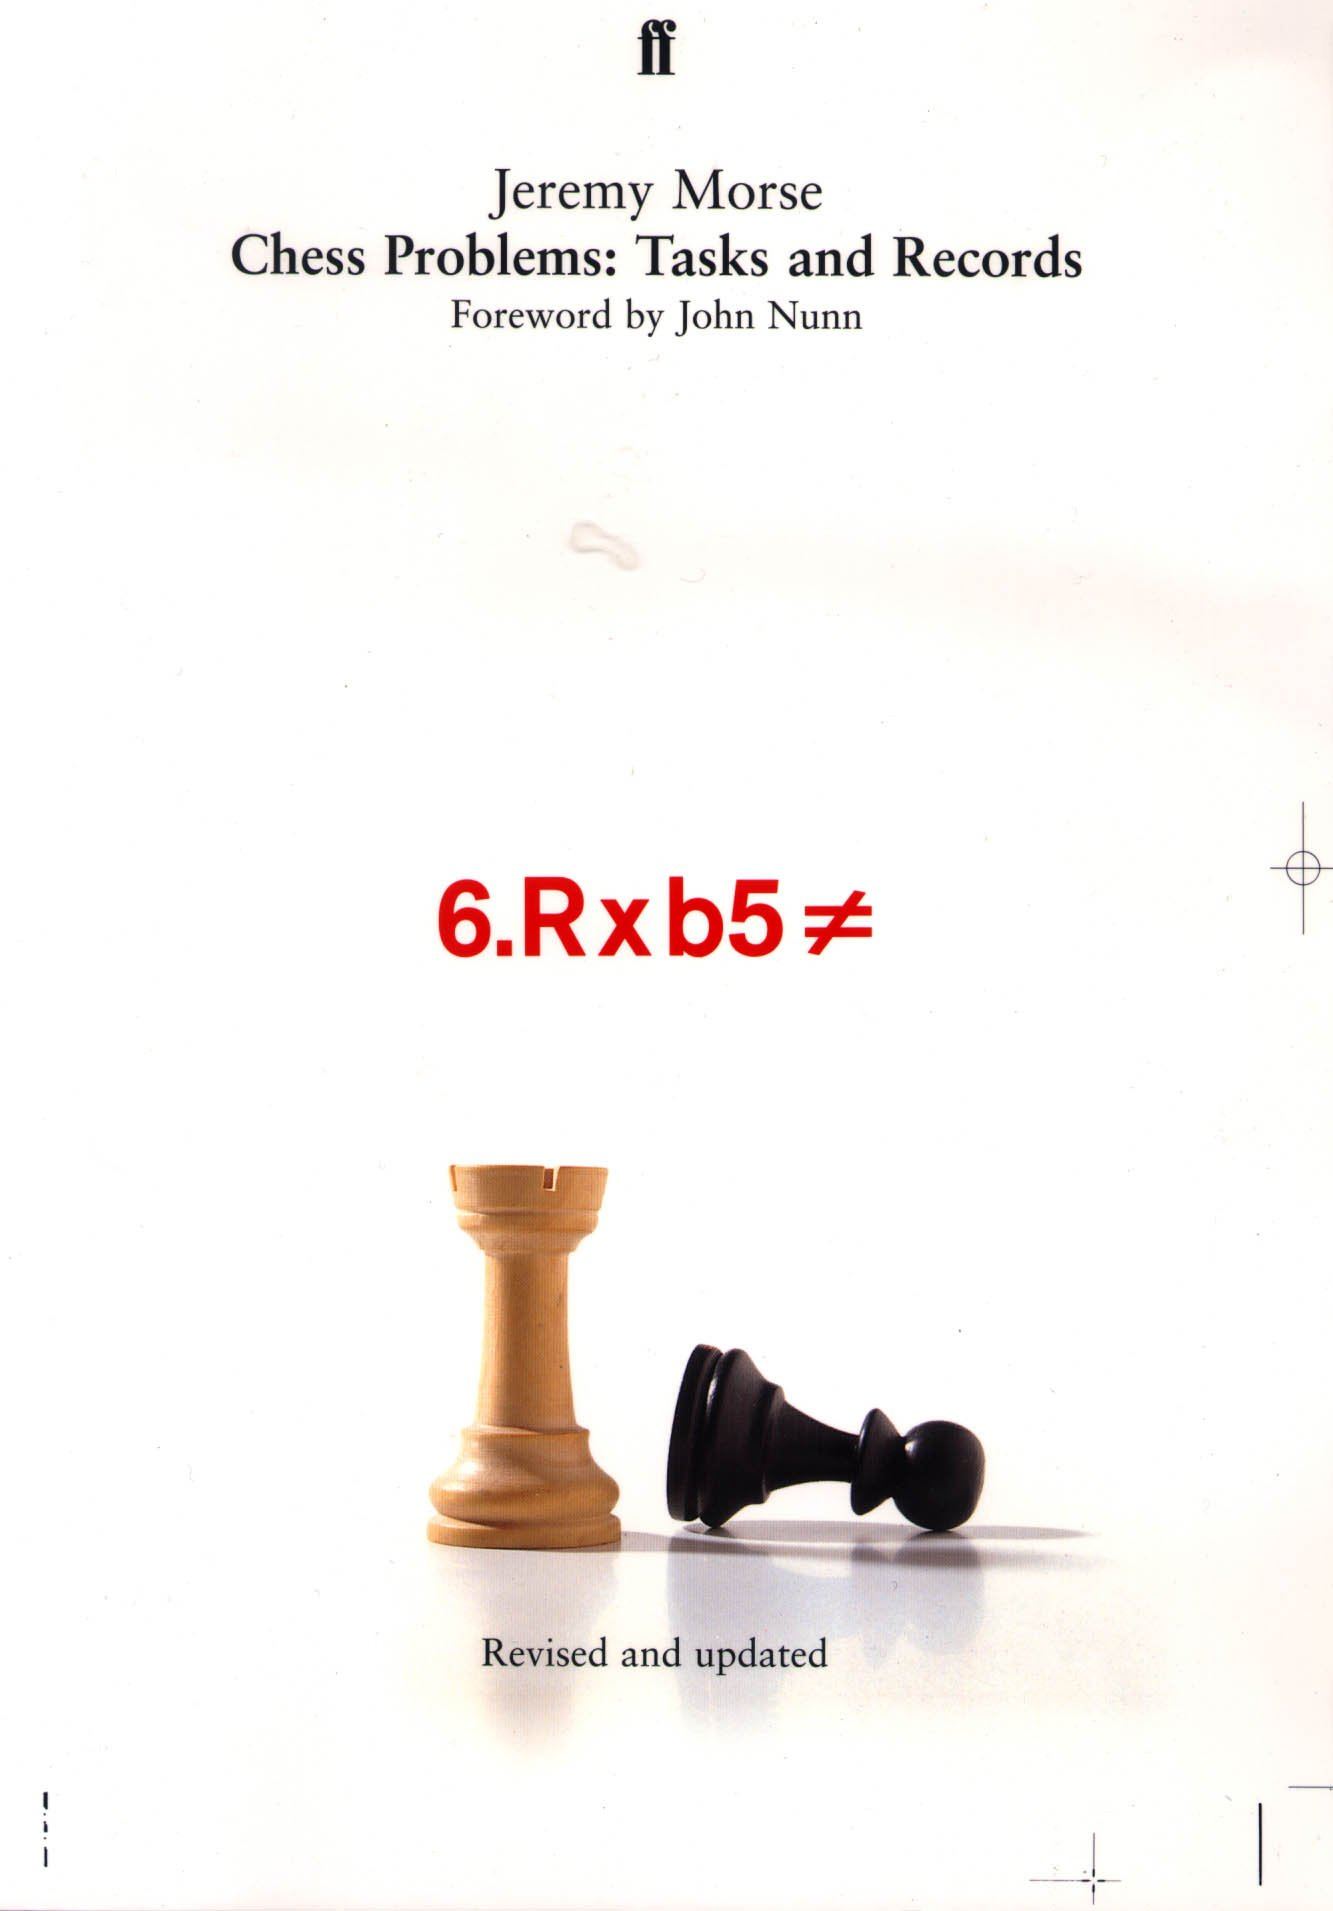 Chess Problems : Tasks and Records, Faber & Faber, 1995